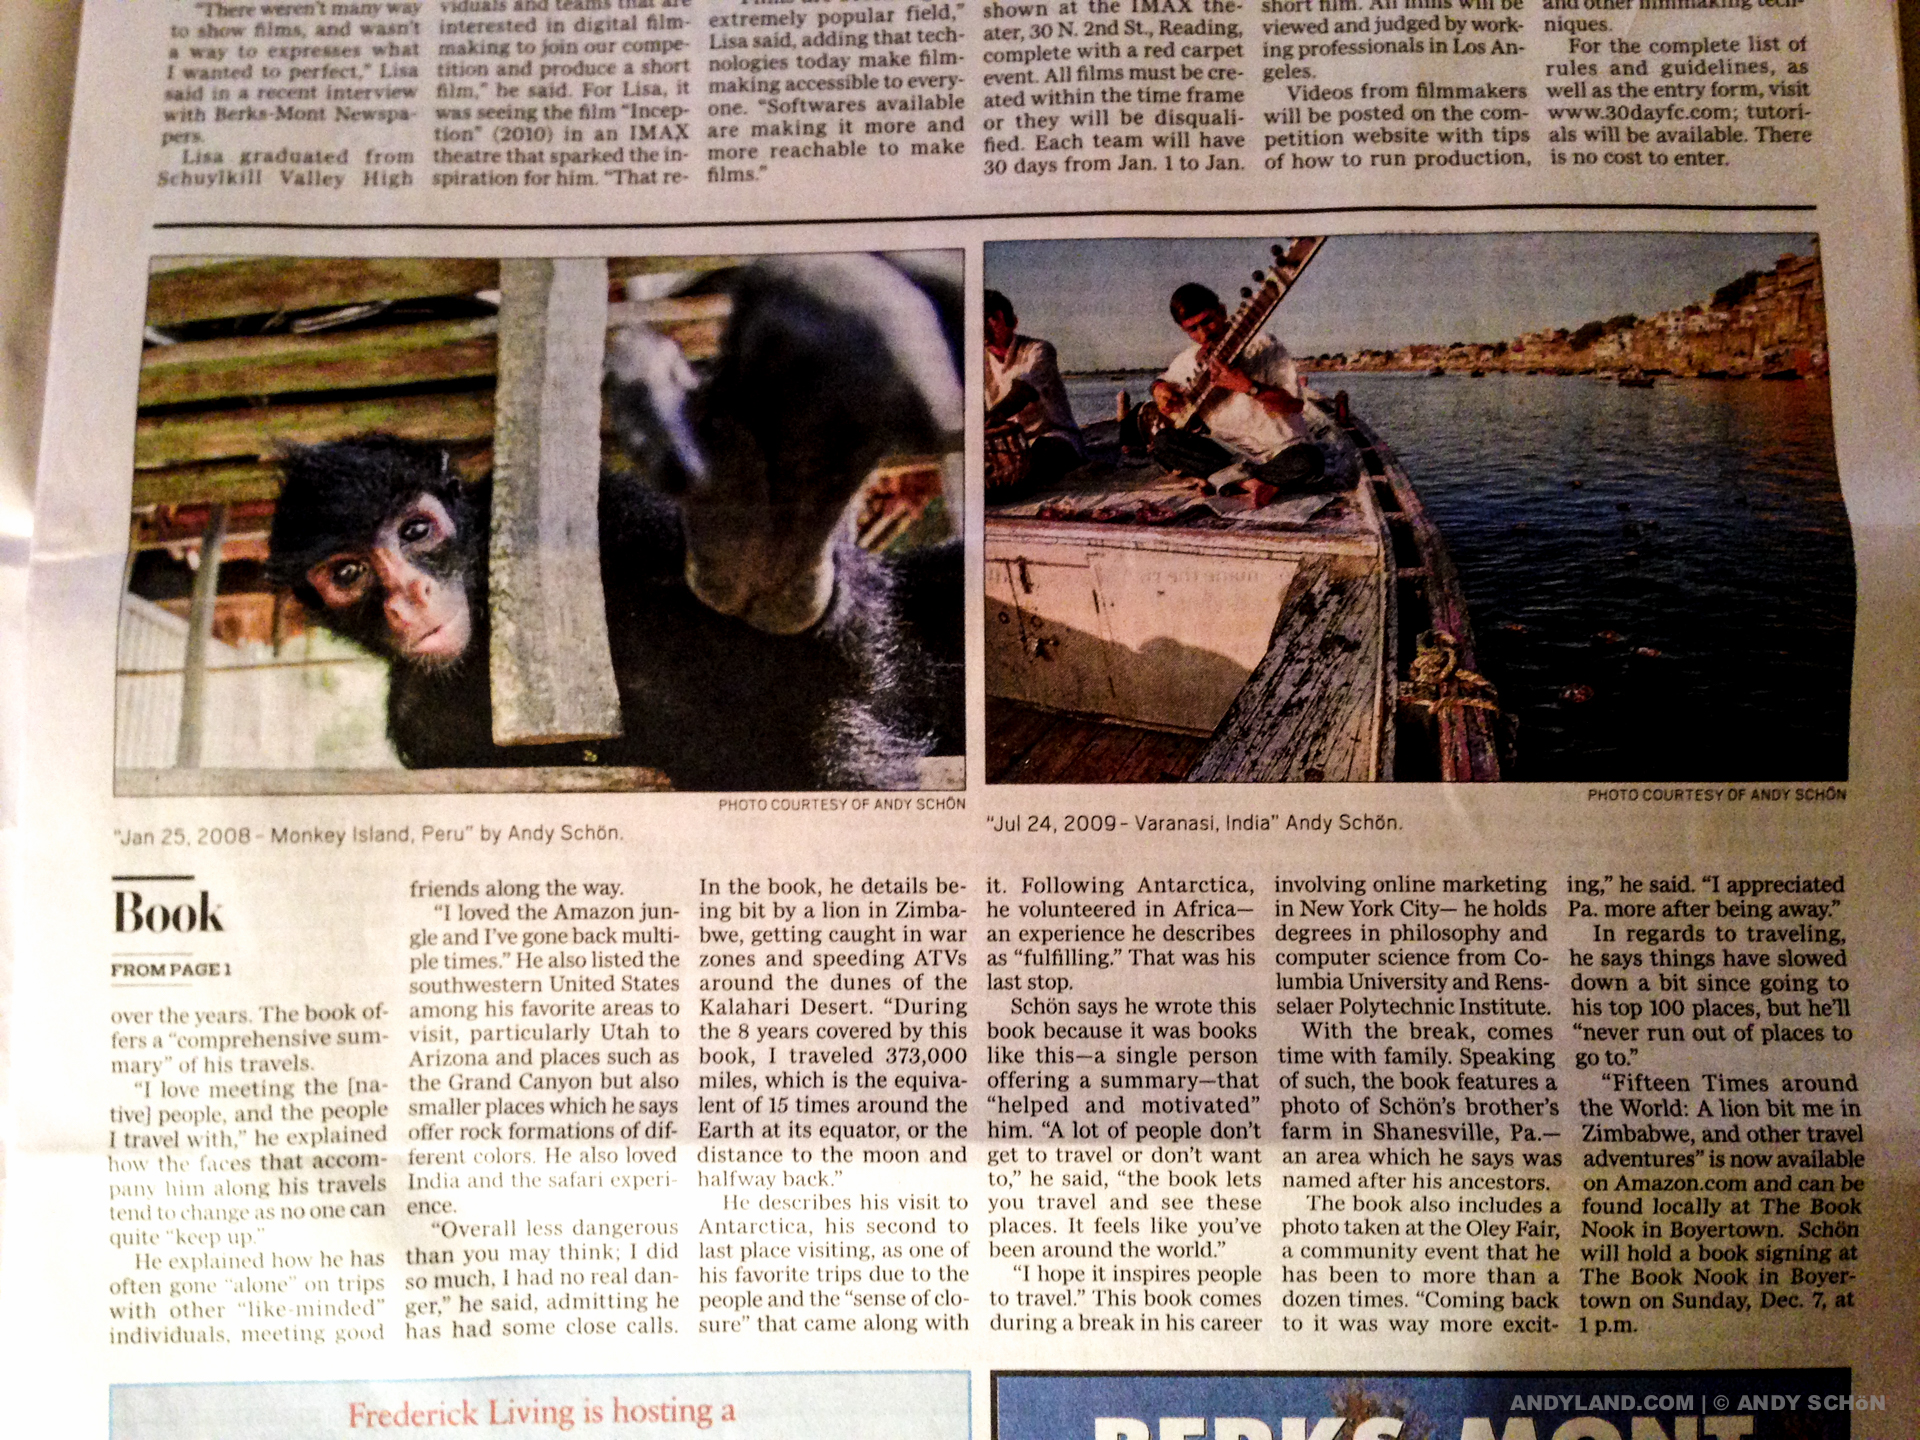 Boyertown Times, Fifteen Times around the World, front page article